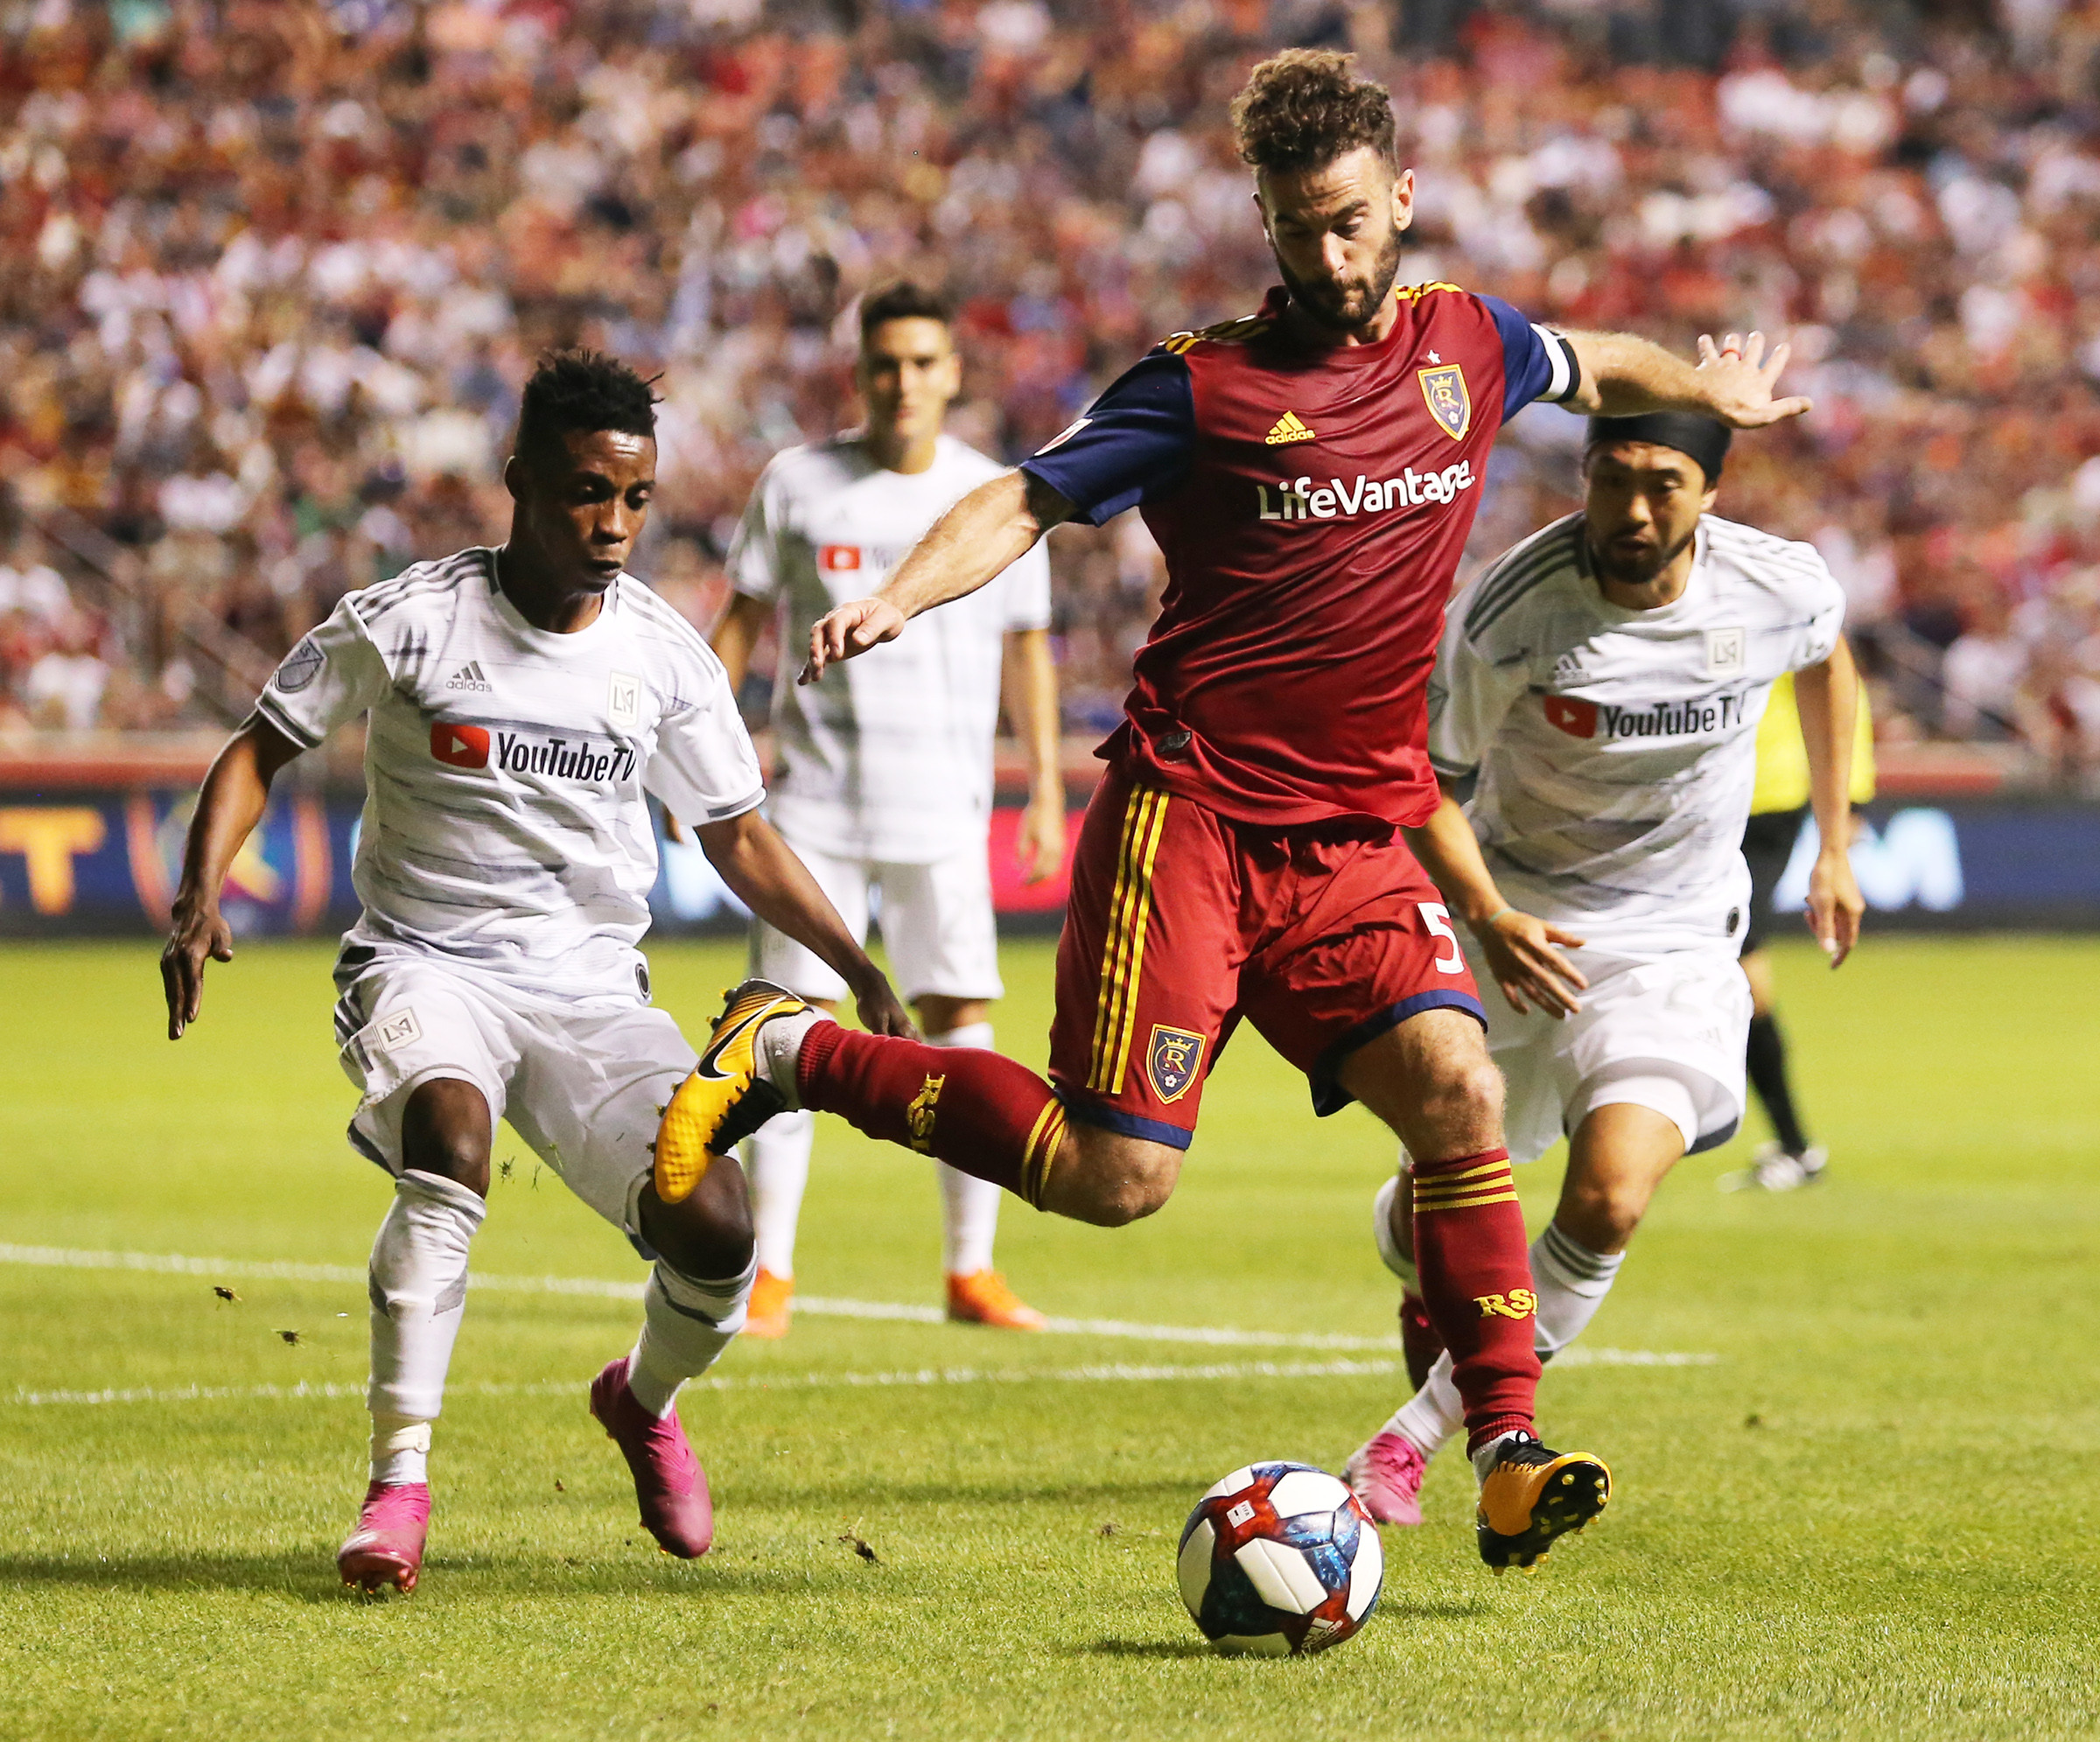 Real Salt Lake midfielder Kyle Beckerman (5) works to control the ball as as Real Salt Lake and Los Angelees FC play at Rio Tinto Stadium in Sandy on Saturday, Aug. 17, 2019. LA won 2-0.